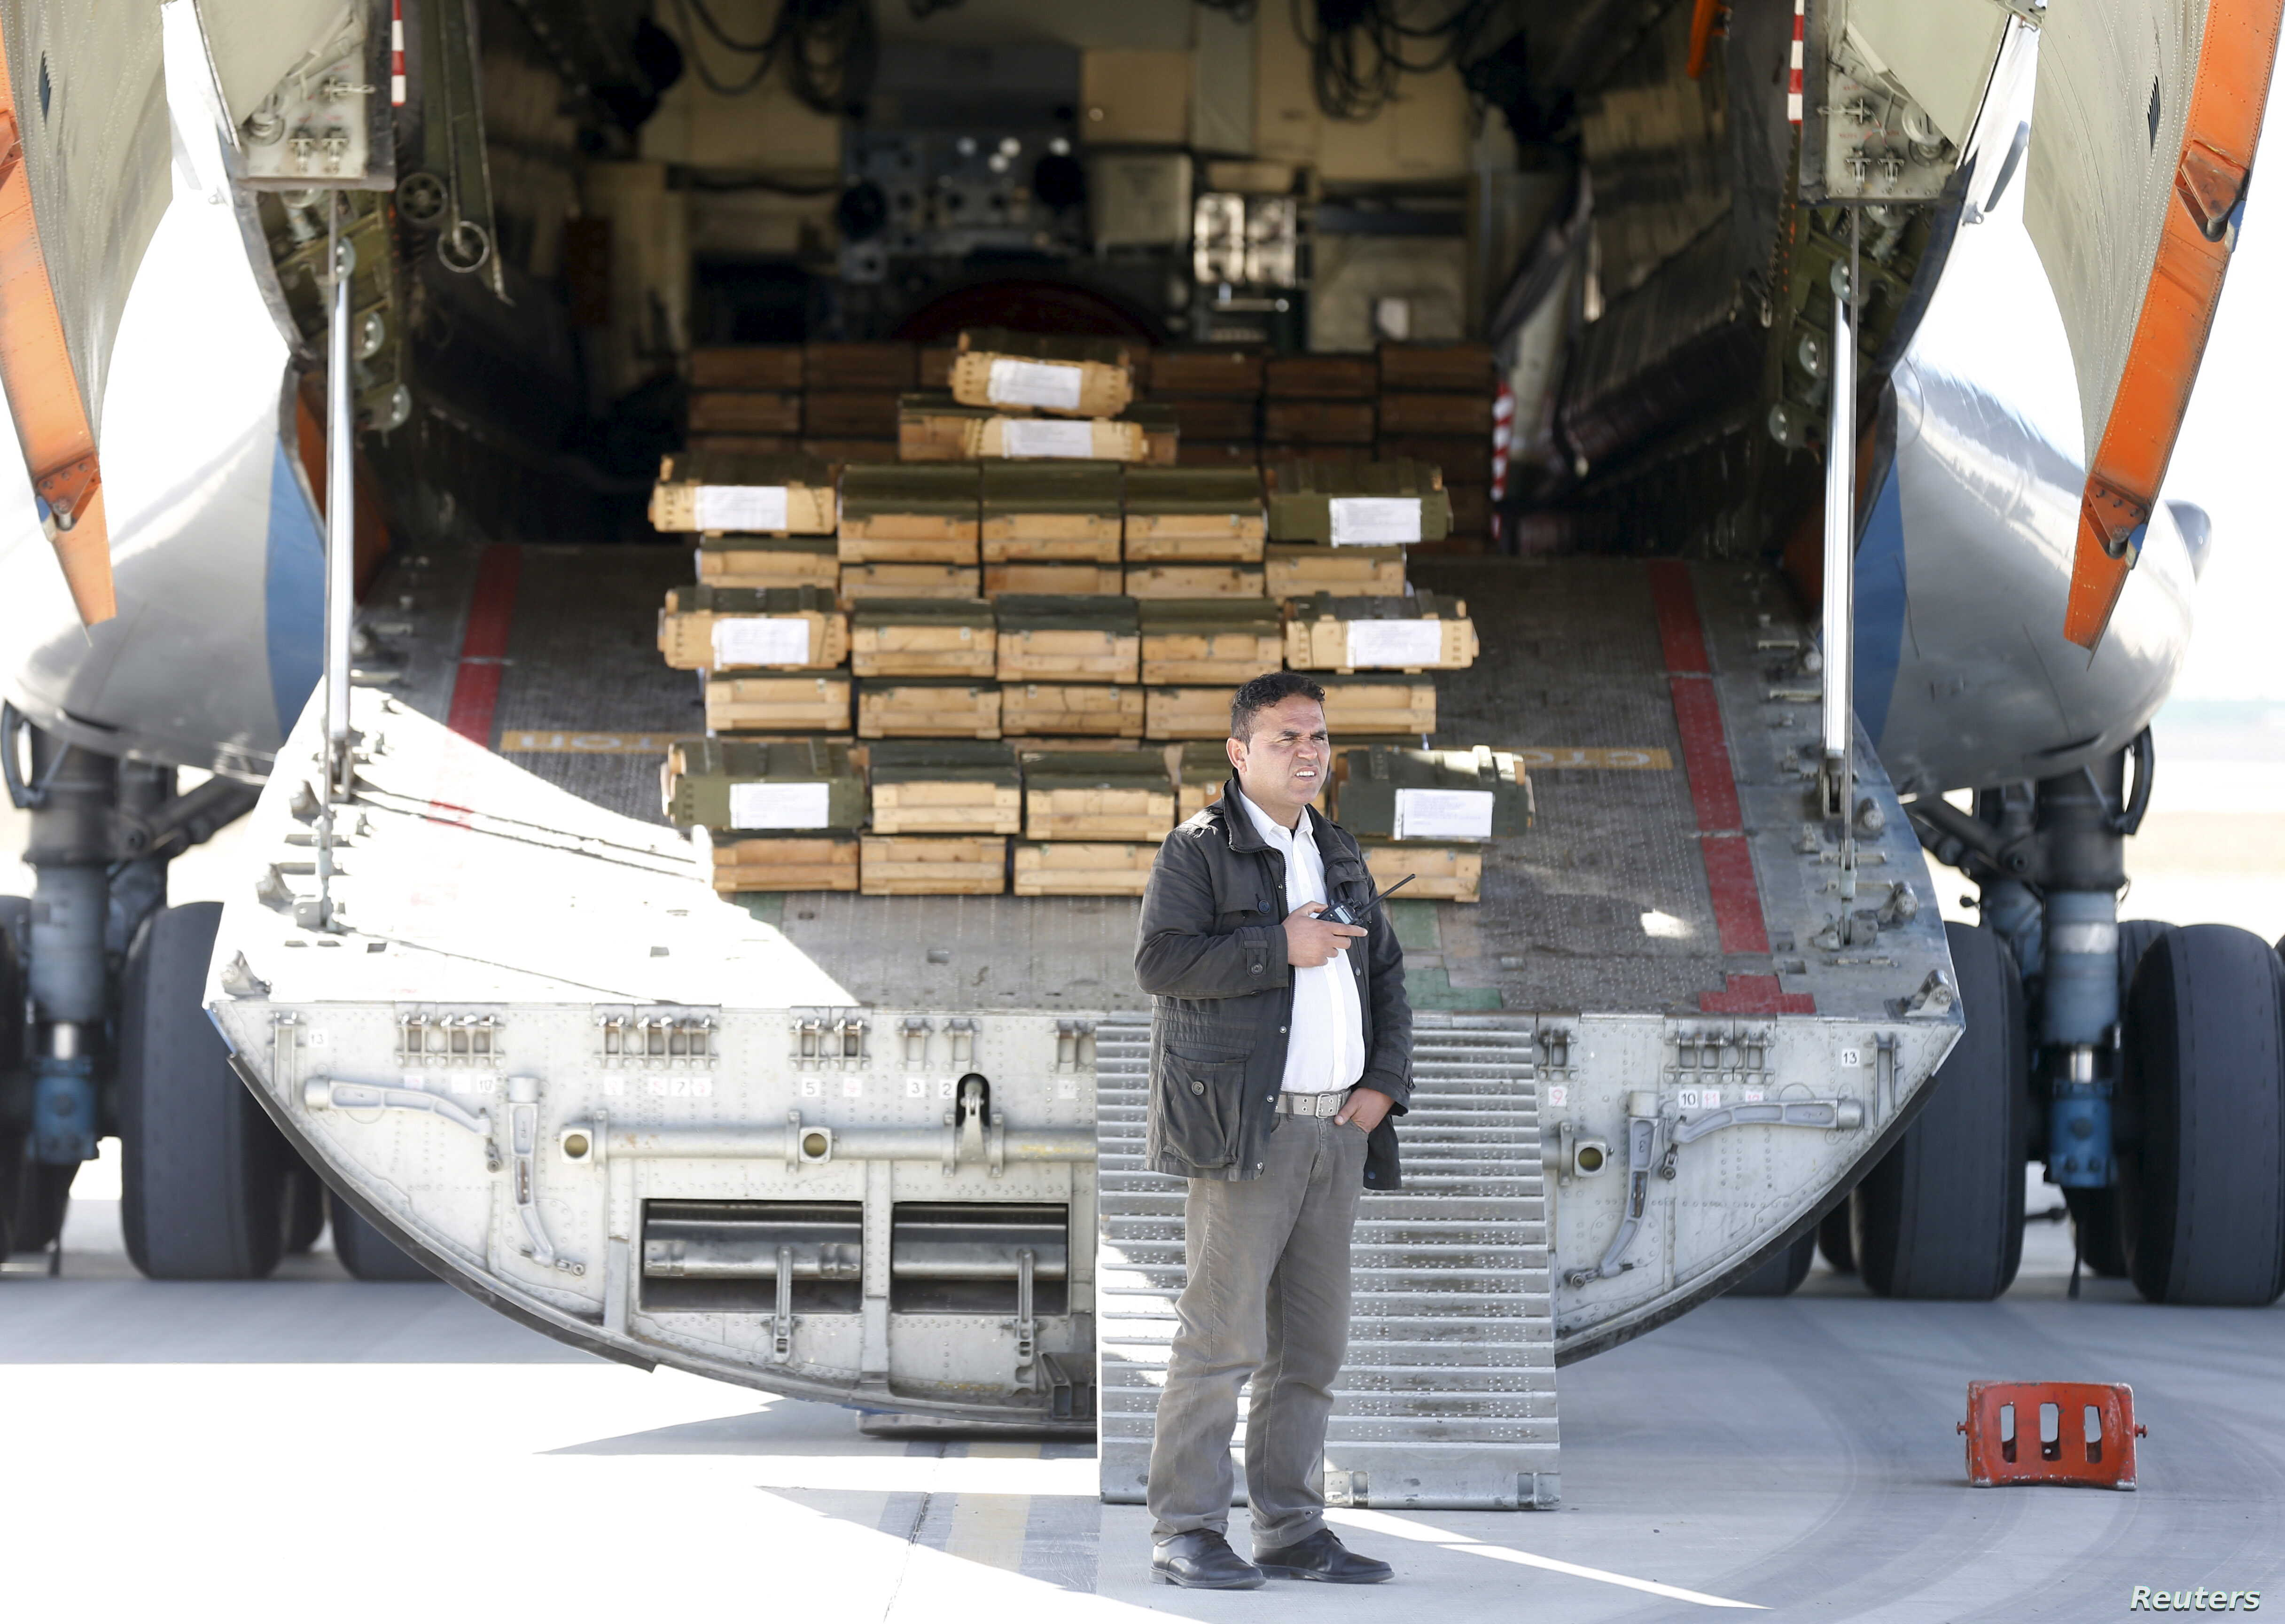 An Afghan security officer stands next to boxes of ammunition inside a Russian aircraft at the International Kabul Airport, Afghanistan, Feb. 24, 2016.